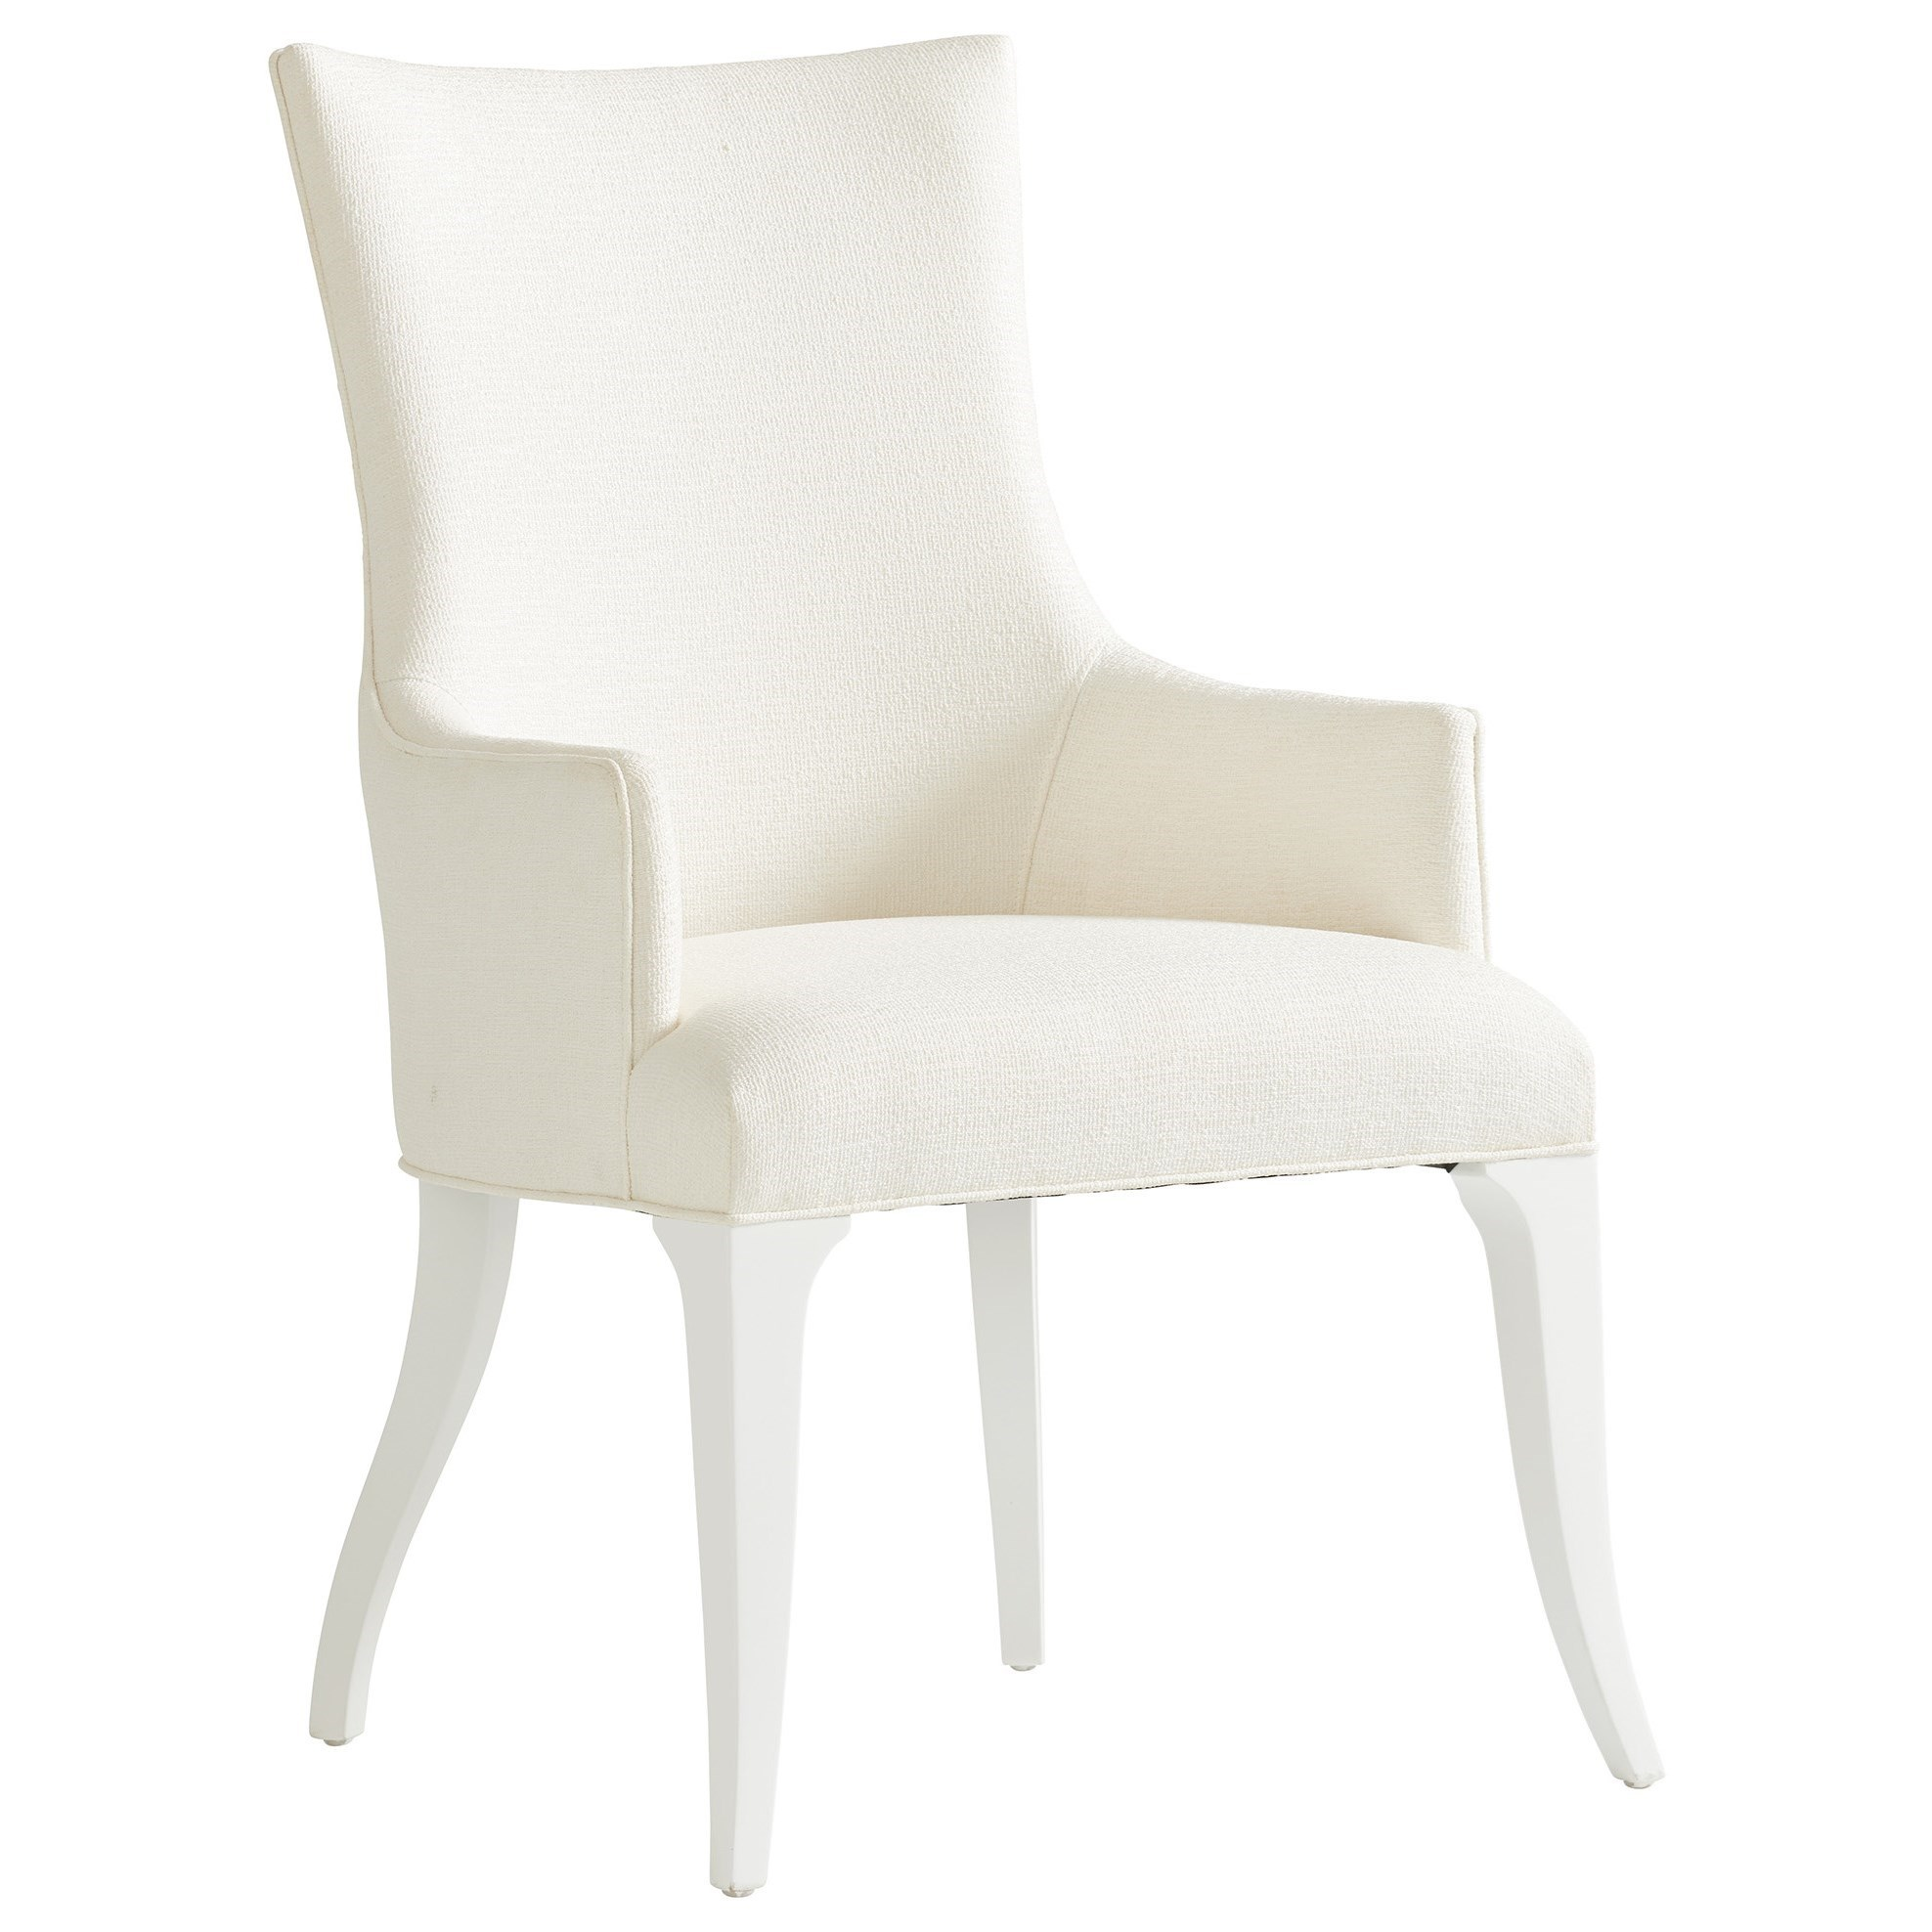 Avondale Geneva Upholstered Arm Chair by Lexington at Johnny Janosik